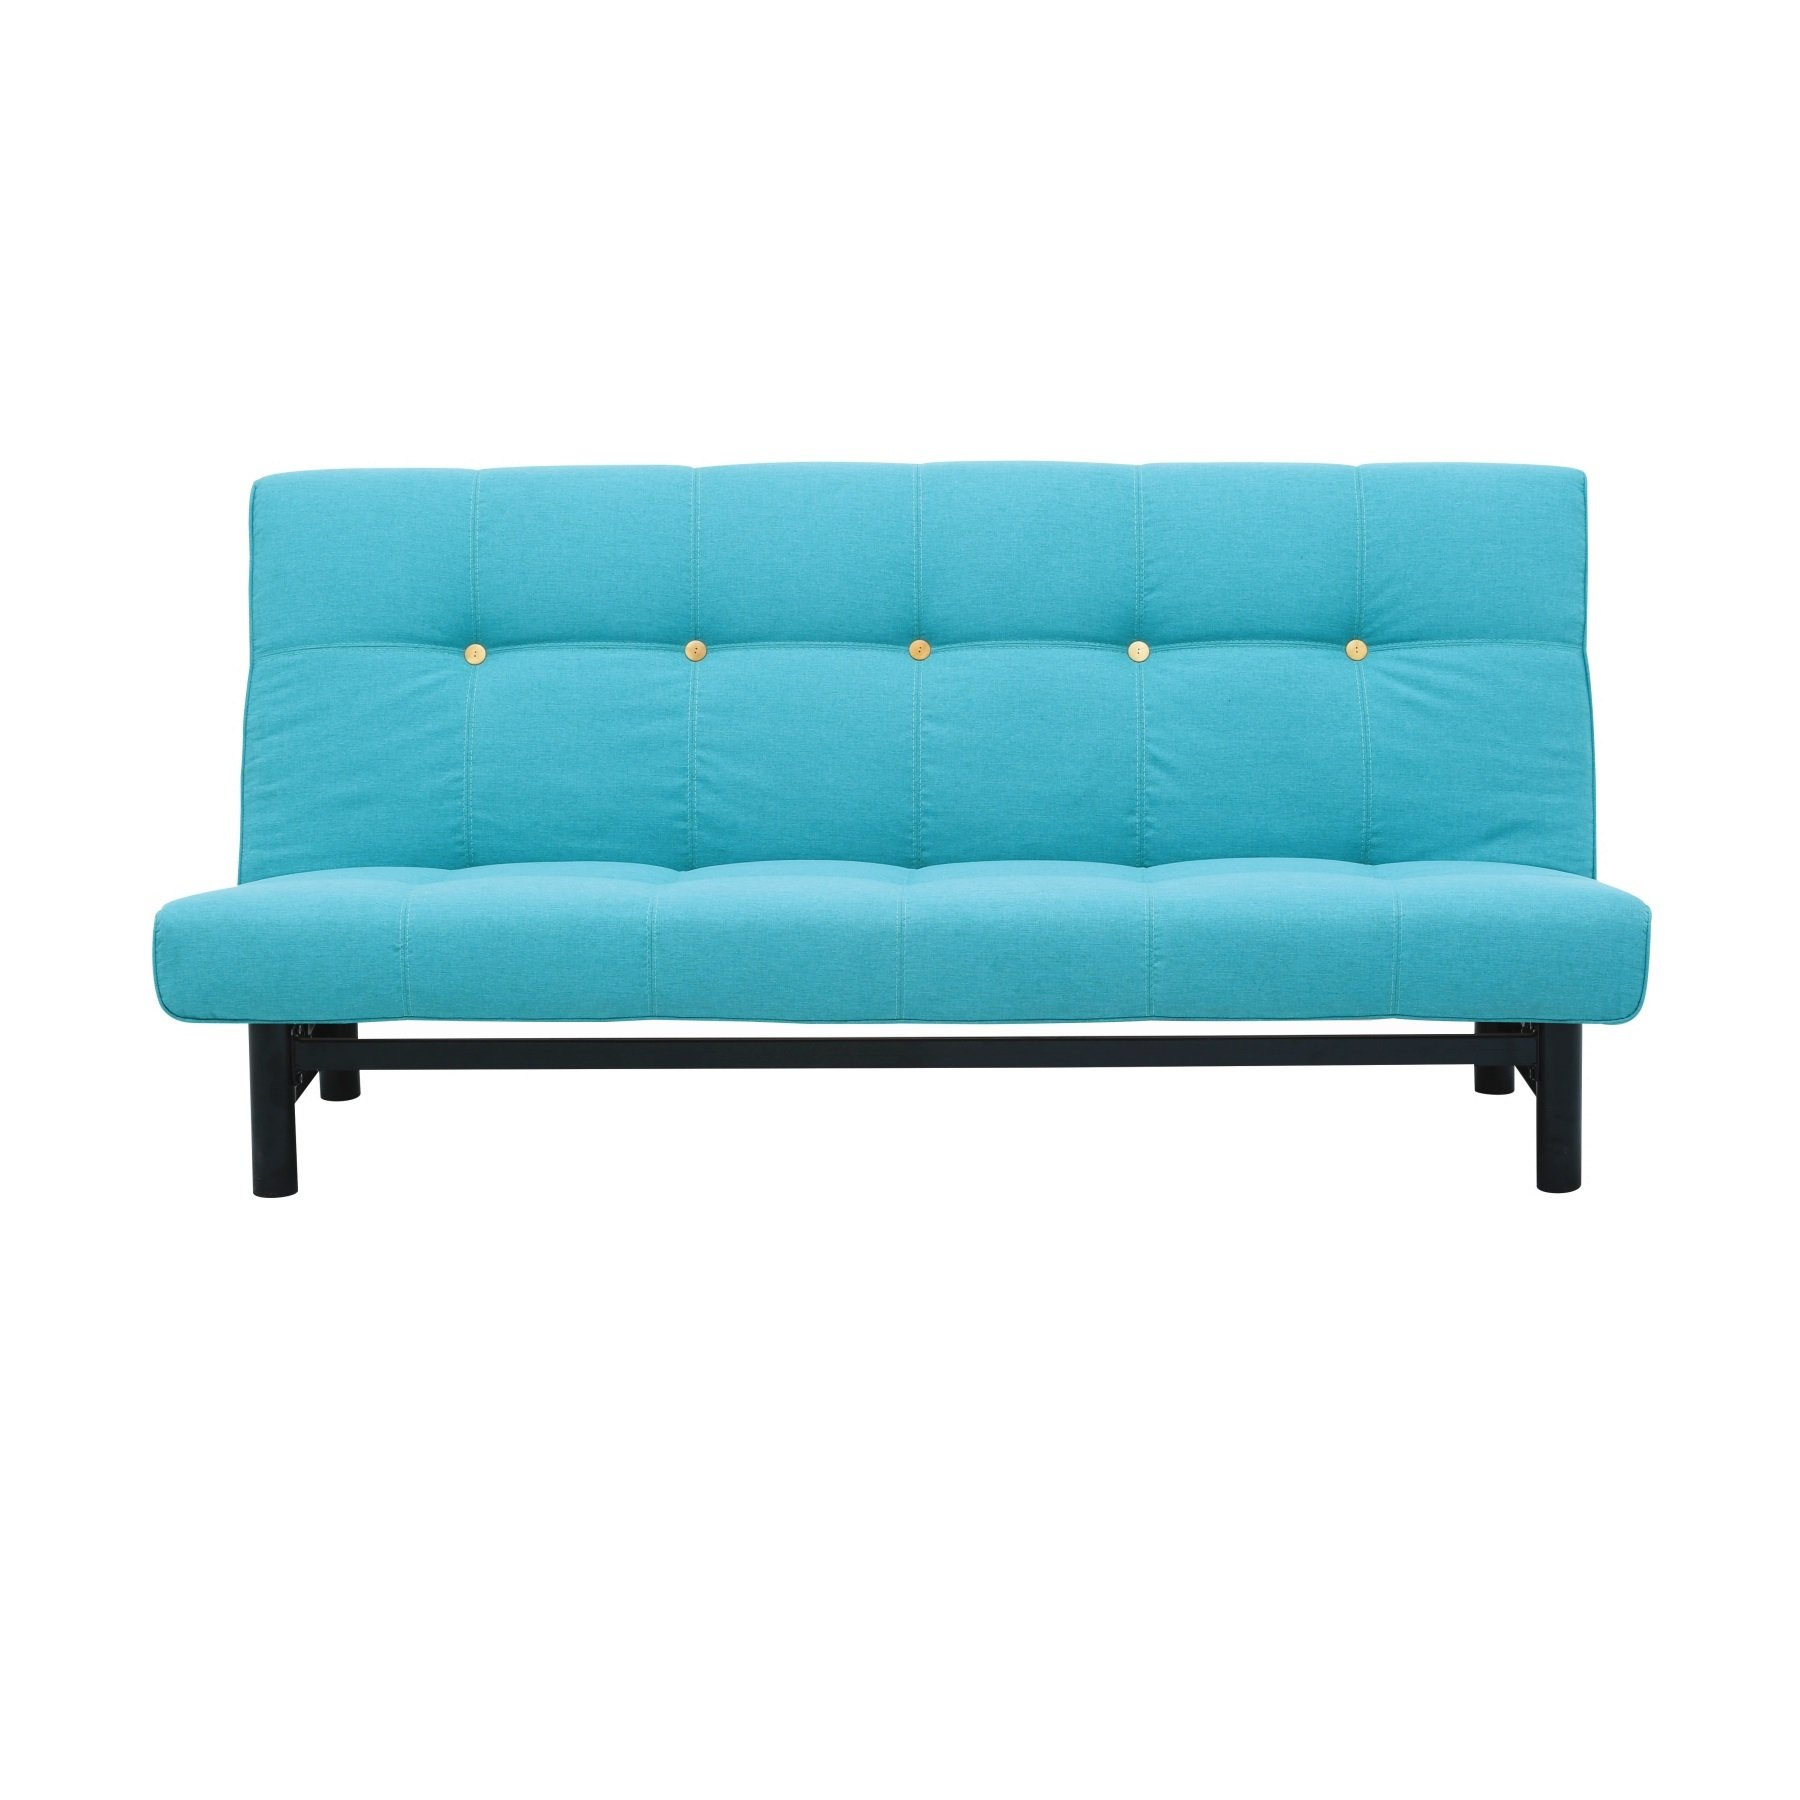 where to get sofa bed in singapore repair crullia by masons home decor